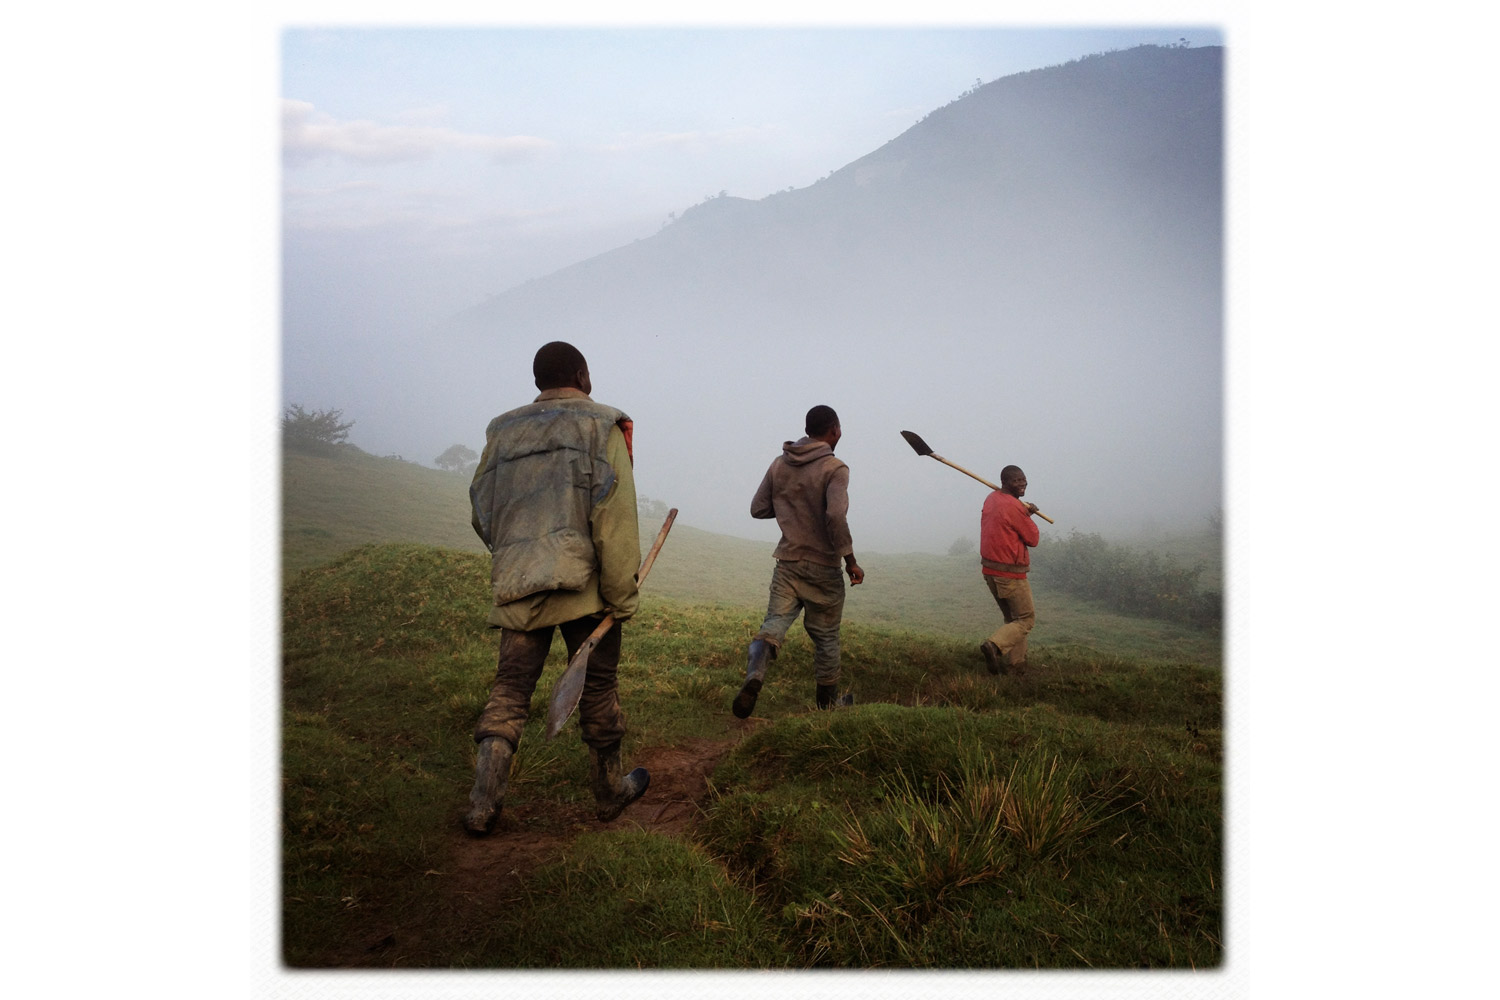 Workers walk to a cassiterite, coltan and tourmaline mine near the town of Numbi, South Kivu, Democratic Republic of Congo. The minerals are used to make key components in electronic devices, including mobile phones.